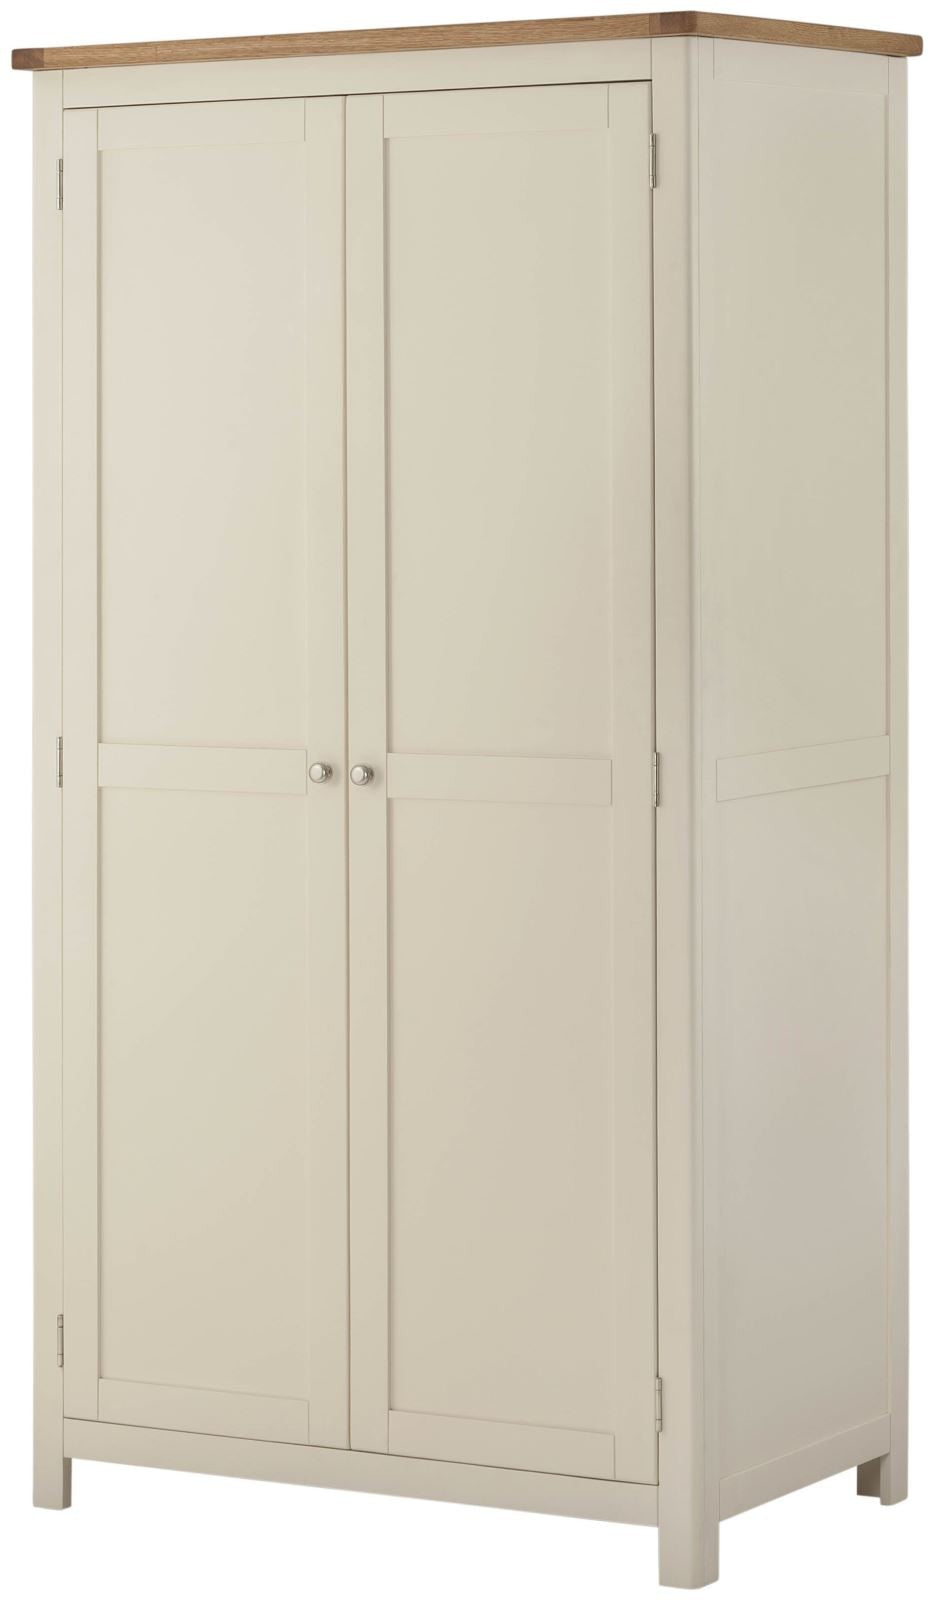 Binbrook 2 Door Wardrobe - Painted